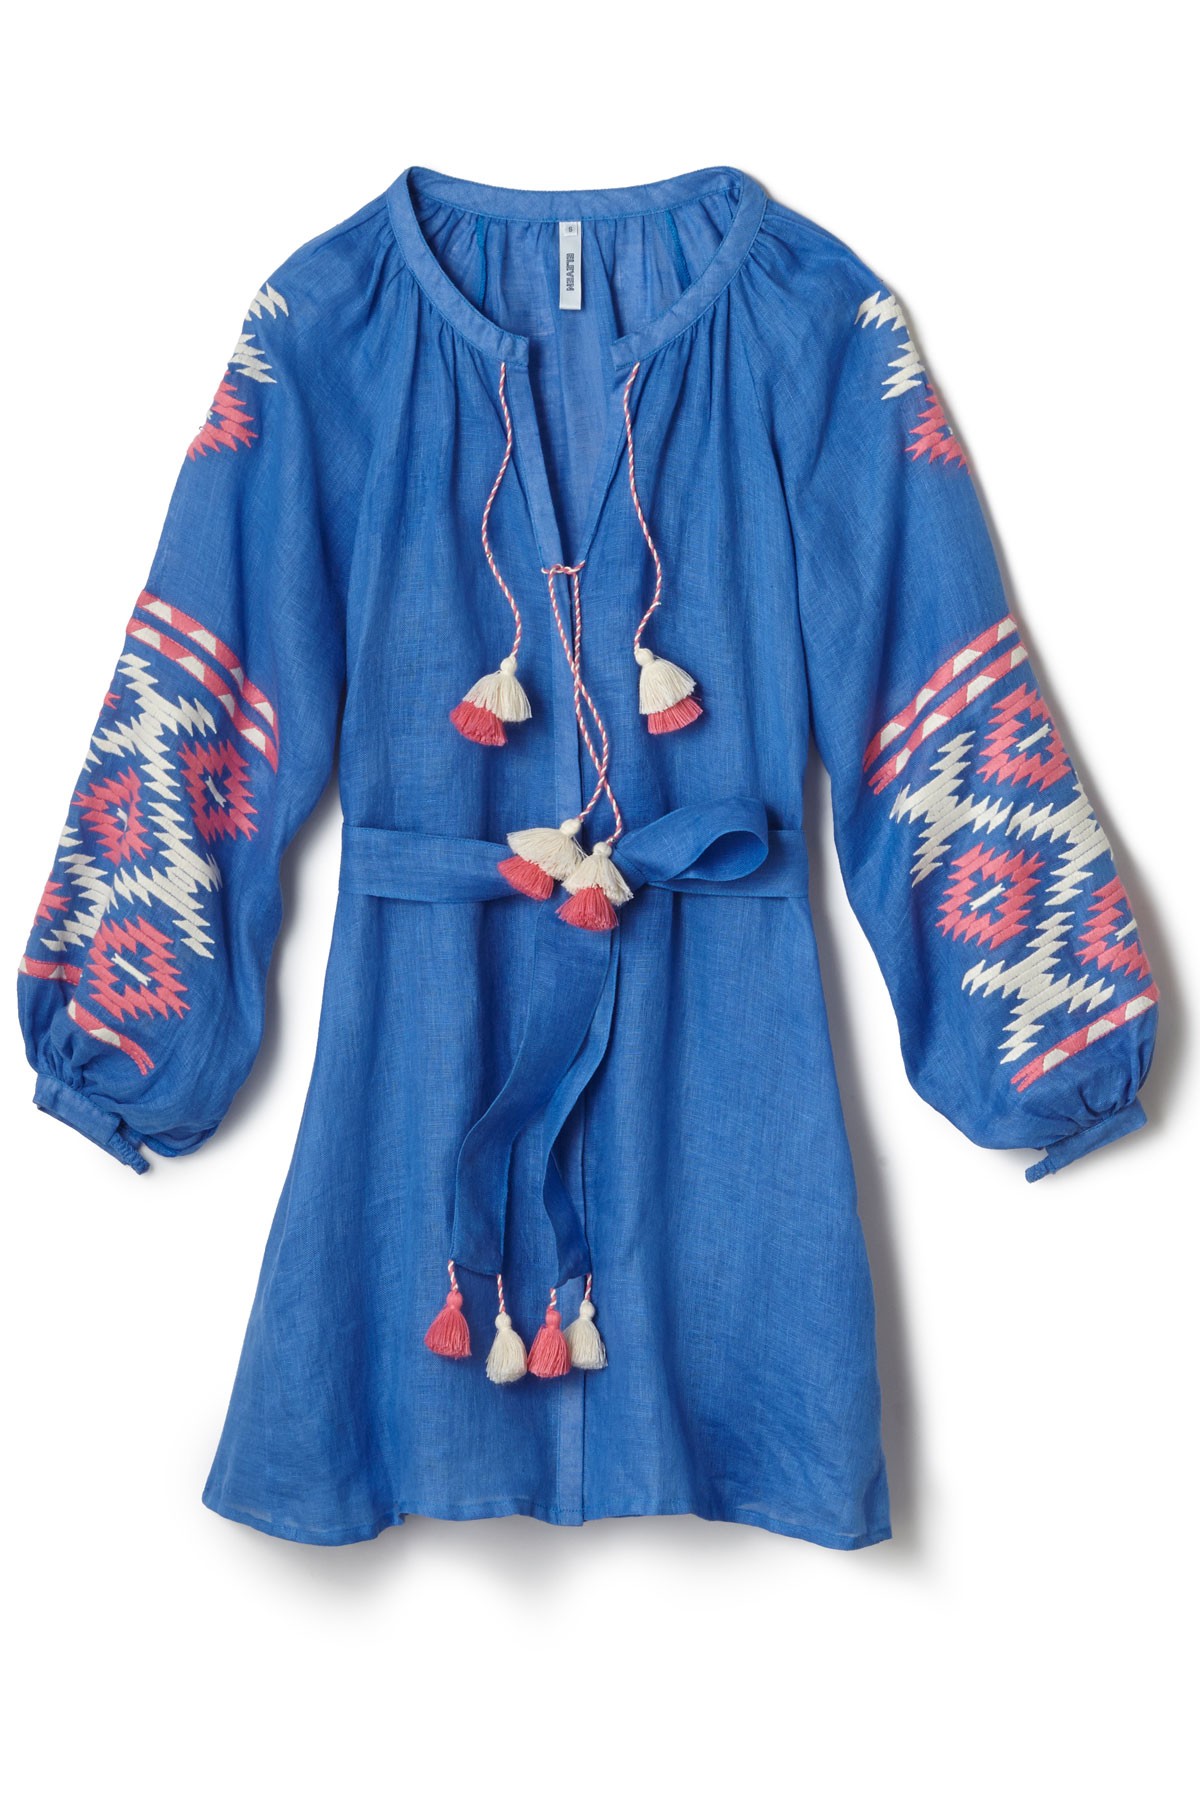 Istanbul Embroidered Mini Dress - Blue 3